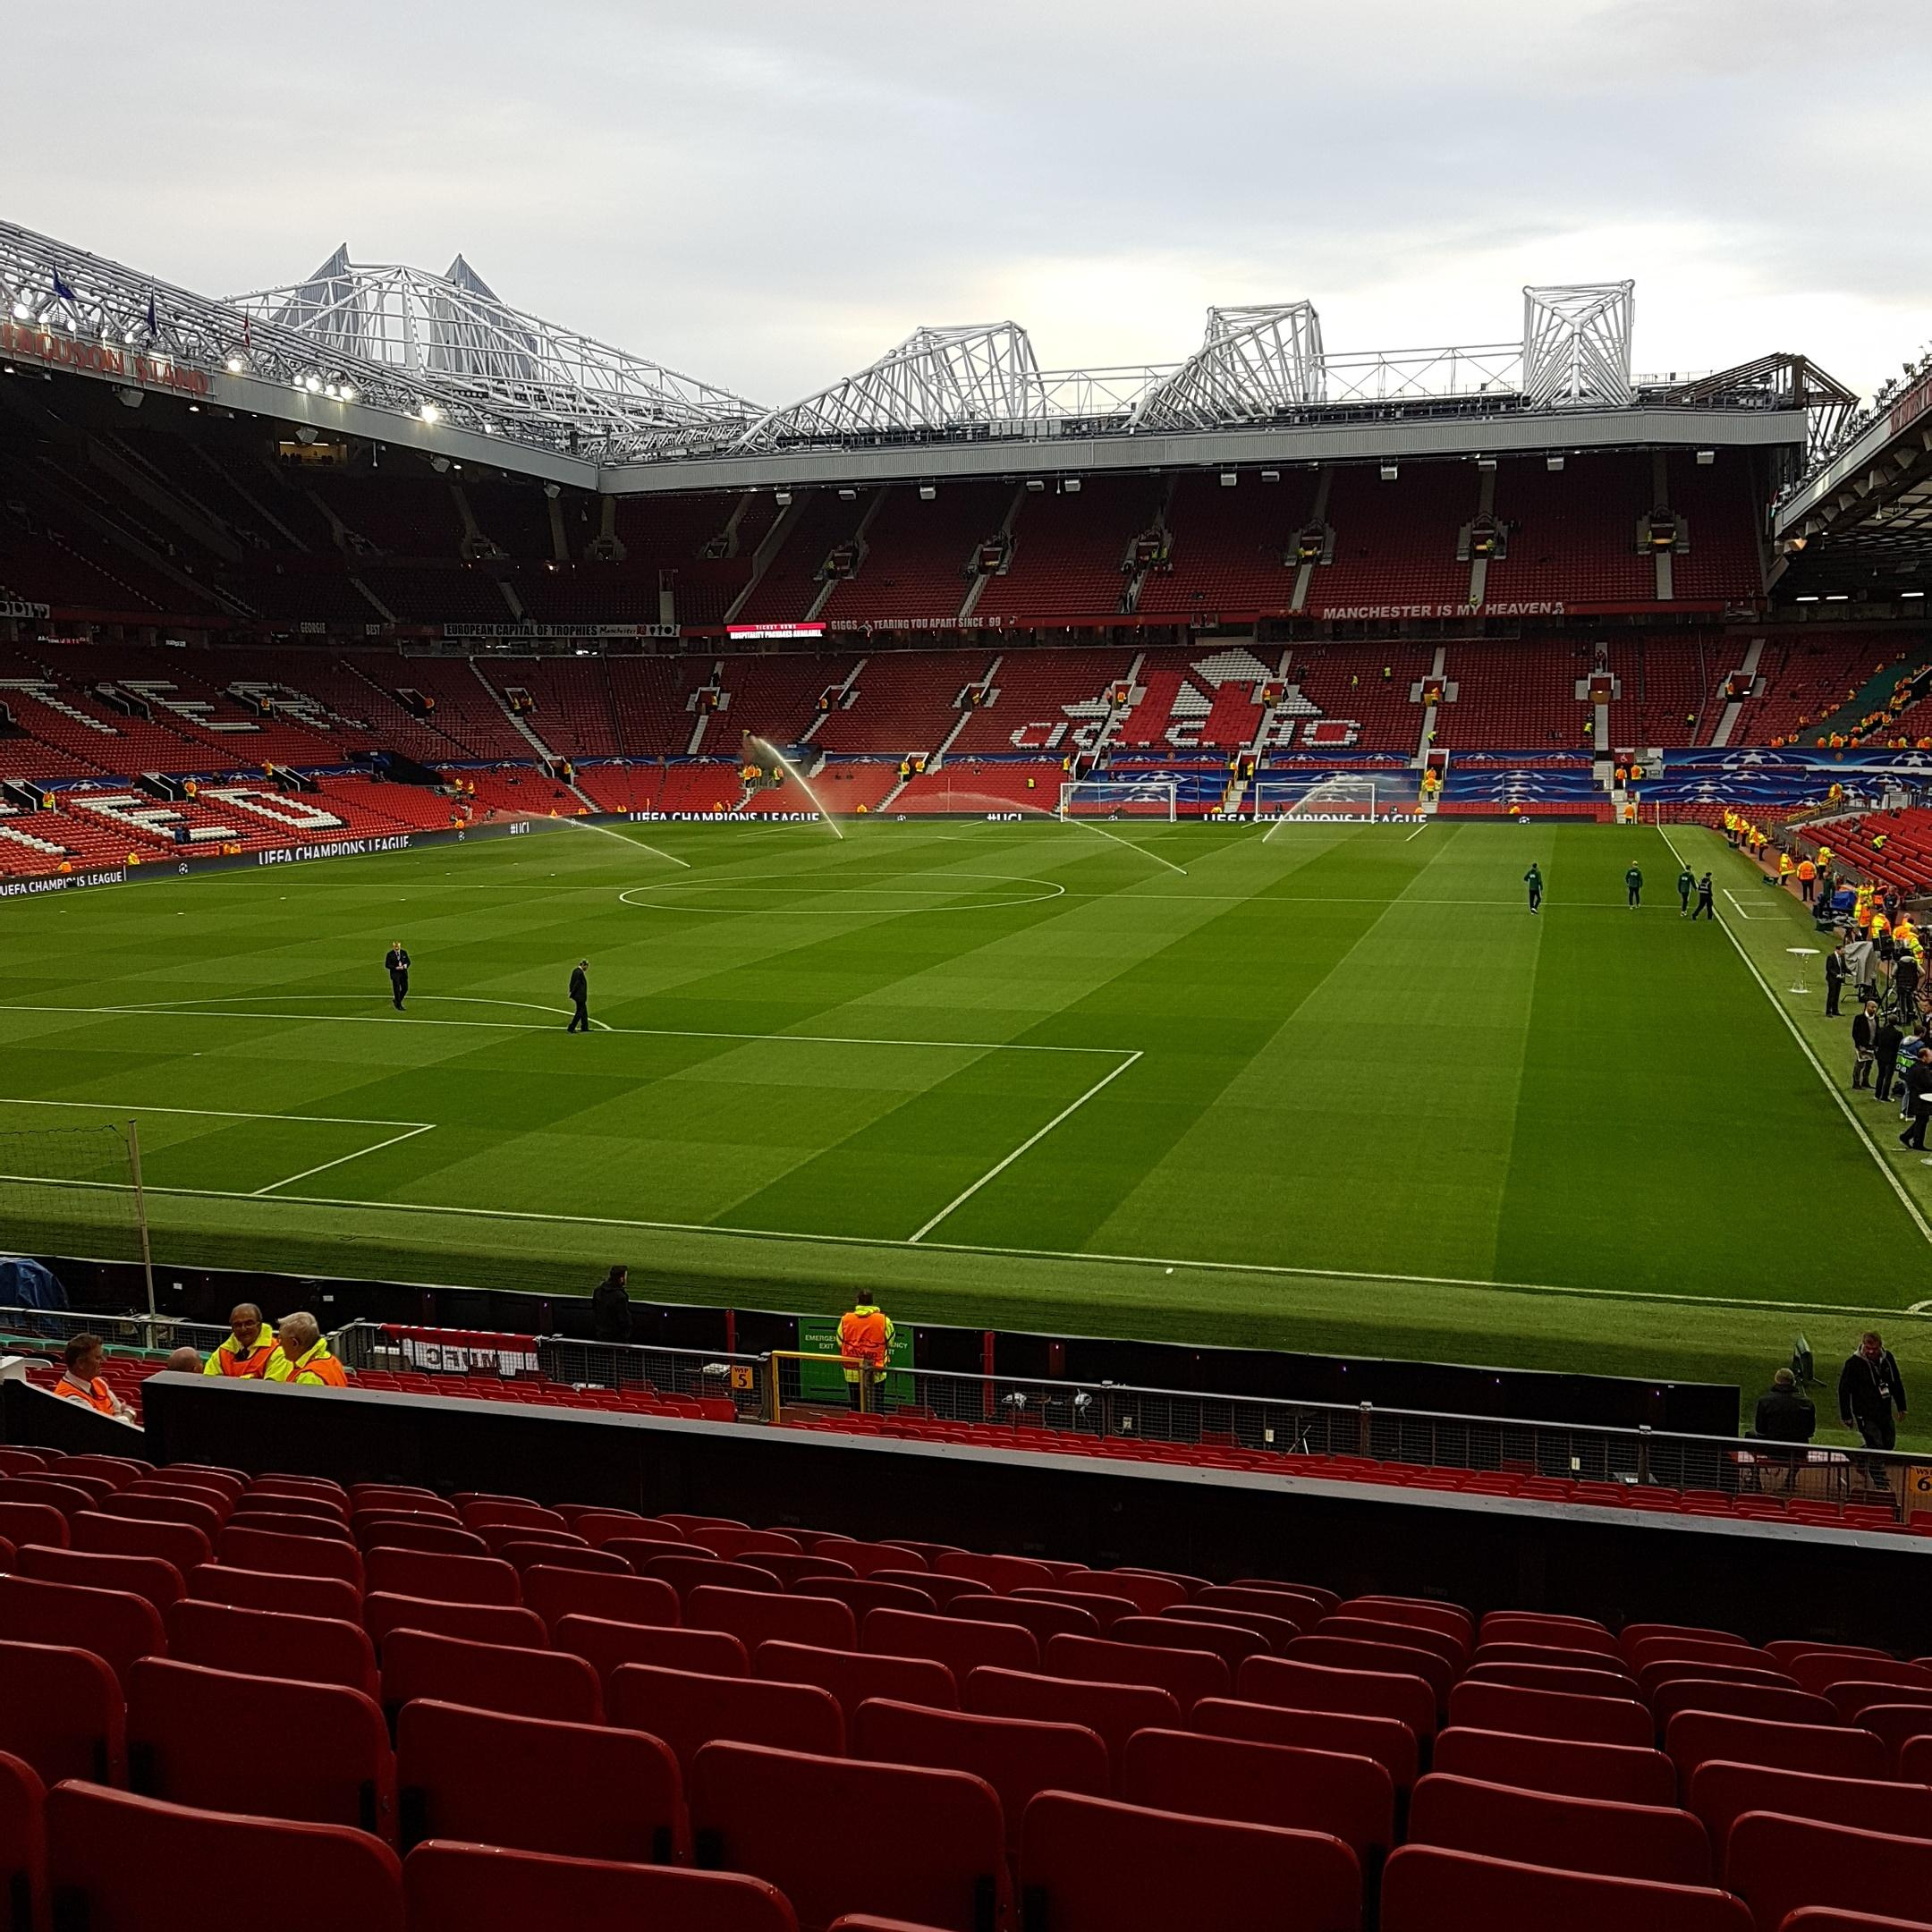 Old Trafford Section W208 Row 12 Seat 125